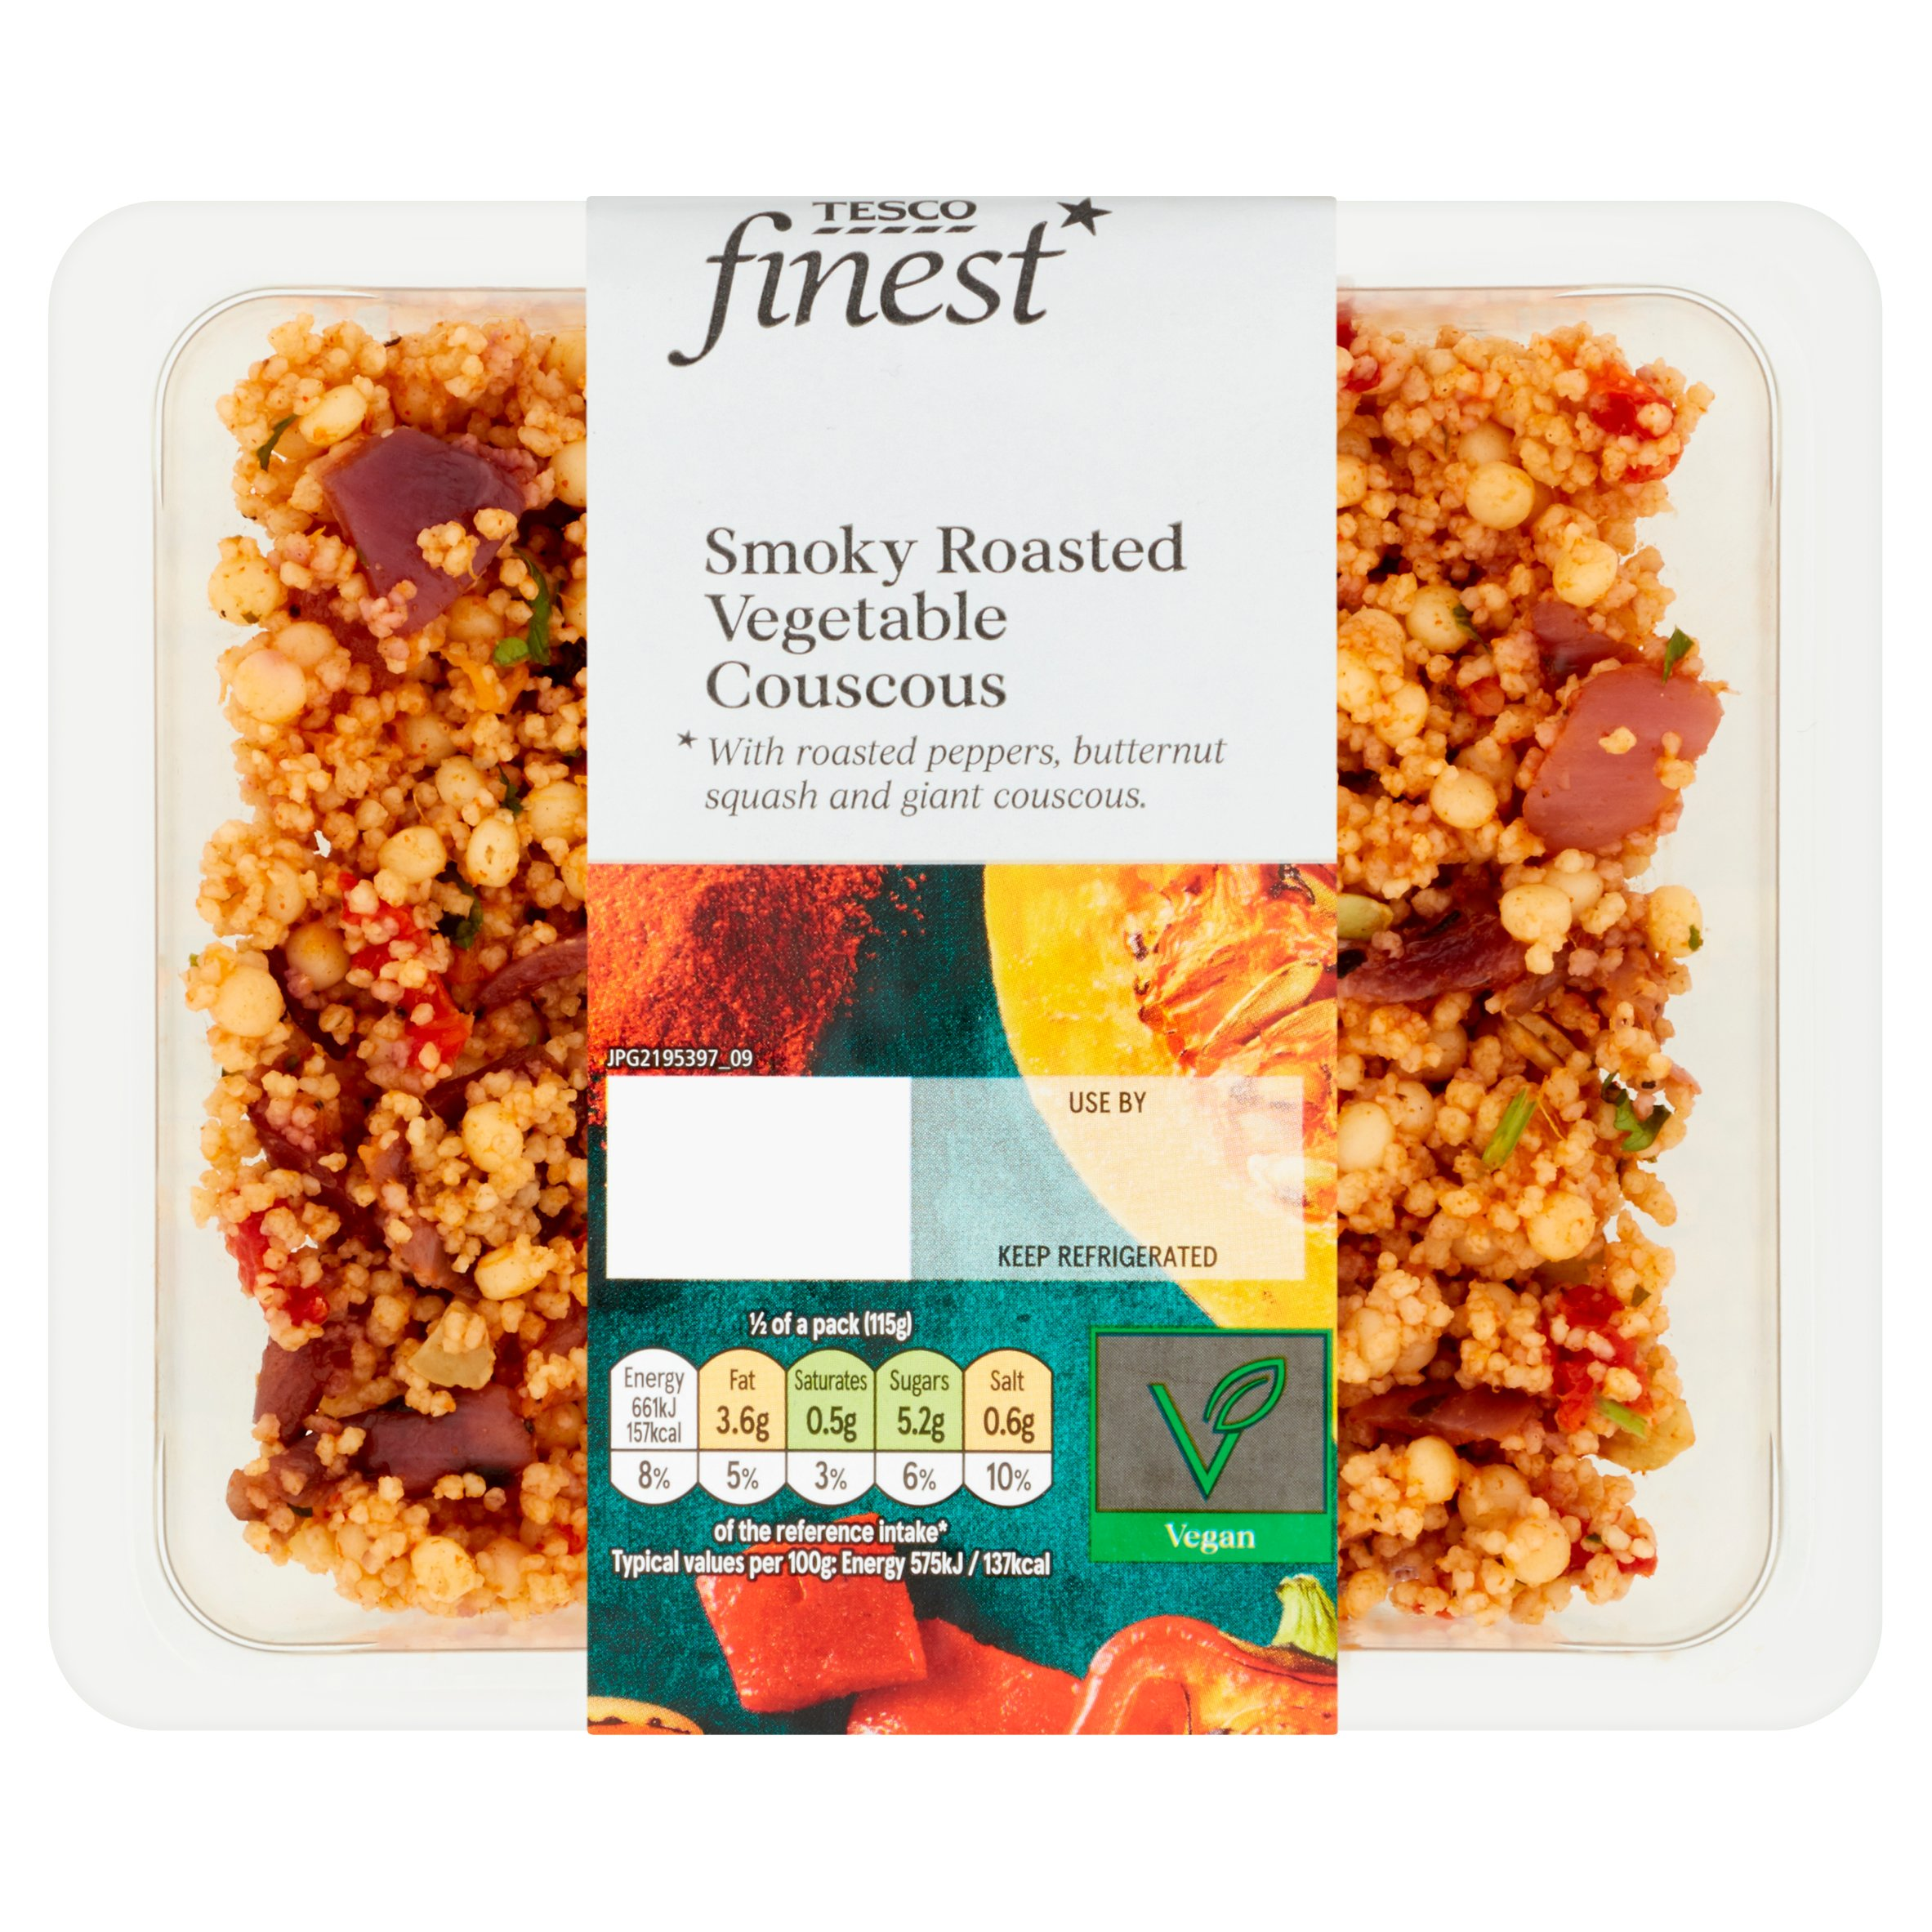 Tesco Finest Smoky Roasted Vegetable Couscous 230G